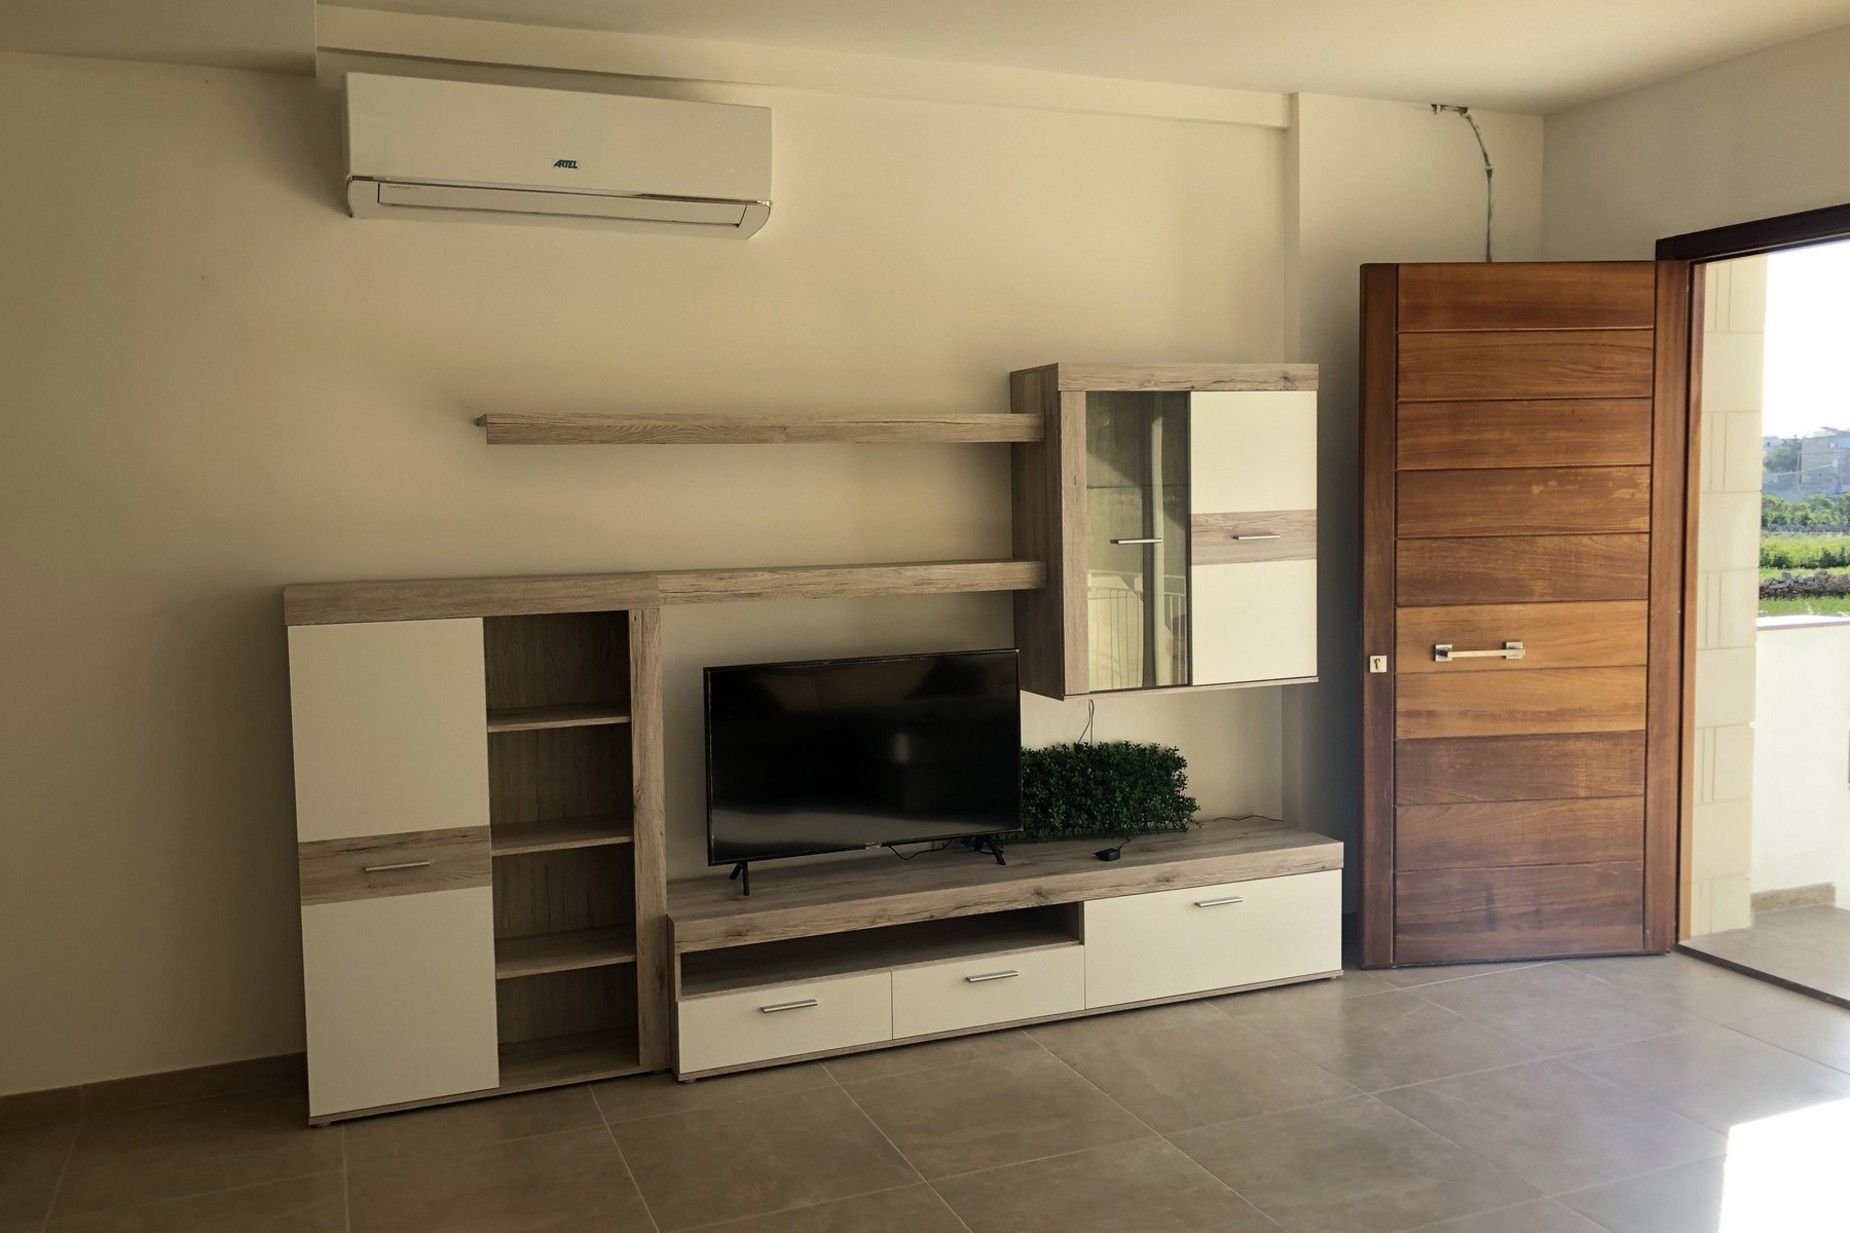 2 bed Maisonette For Rent in Bahar ic-Caghaq, Bahar ic-Caghaq - thumb 2